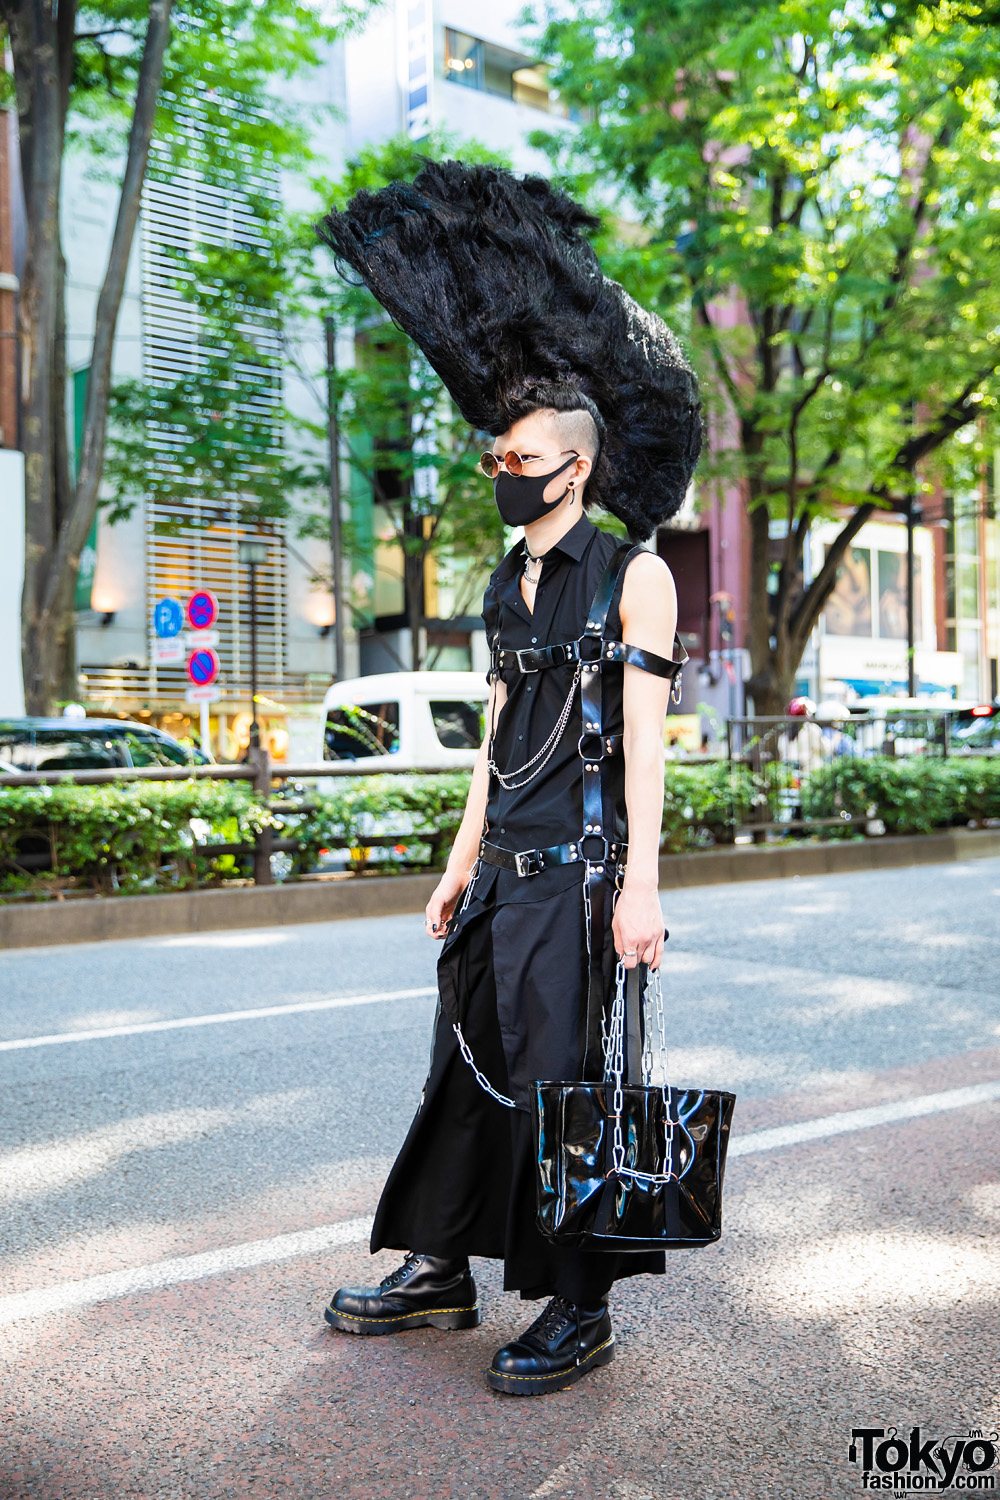 Harajuku Punk Fashion w/ Tall Mohawk, Remake Shirt, Lad Musician Skirt, Dr. Martens Boots, Handmade Body Harness & Vinyl Bag